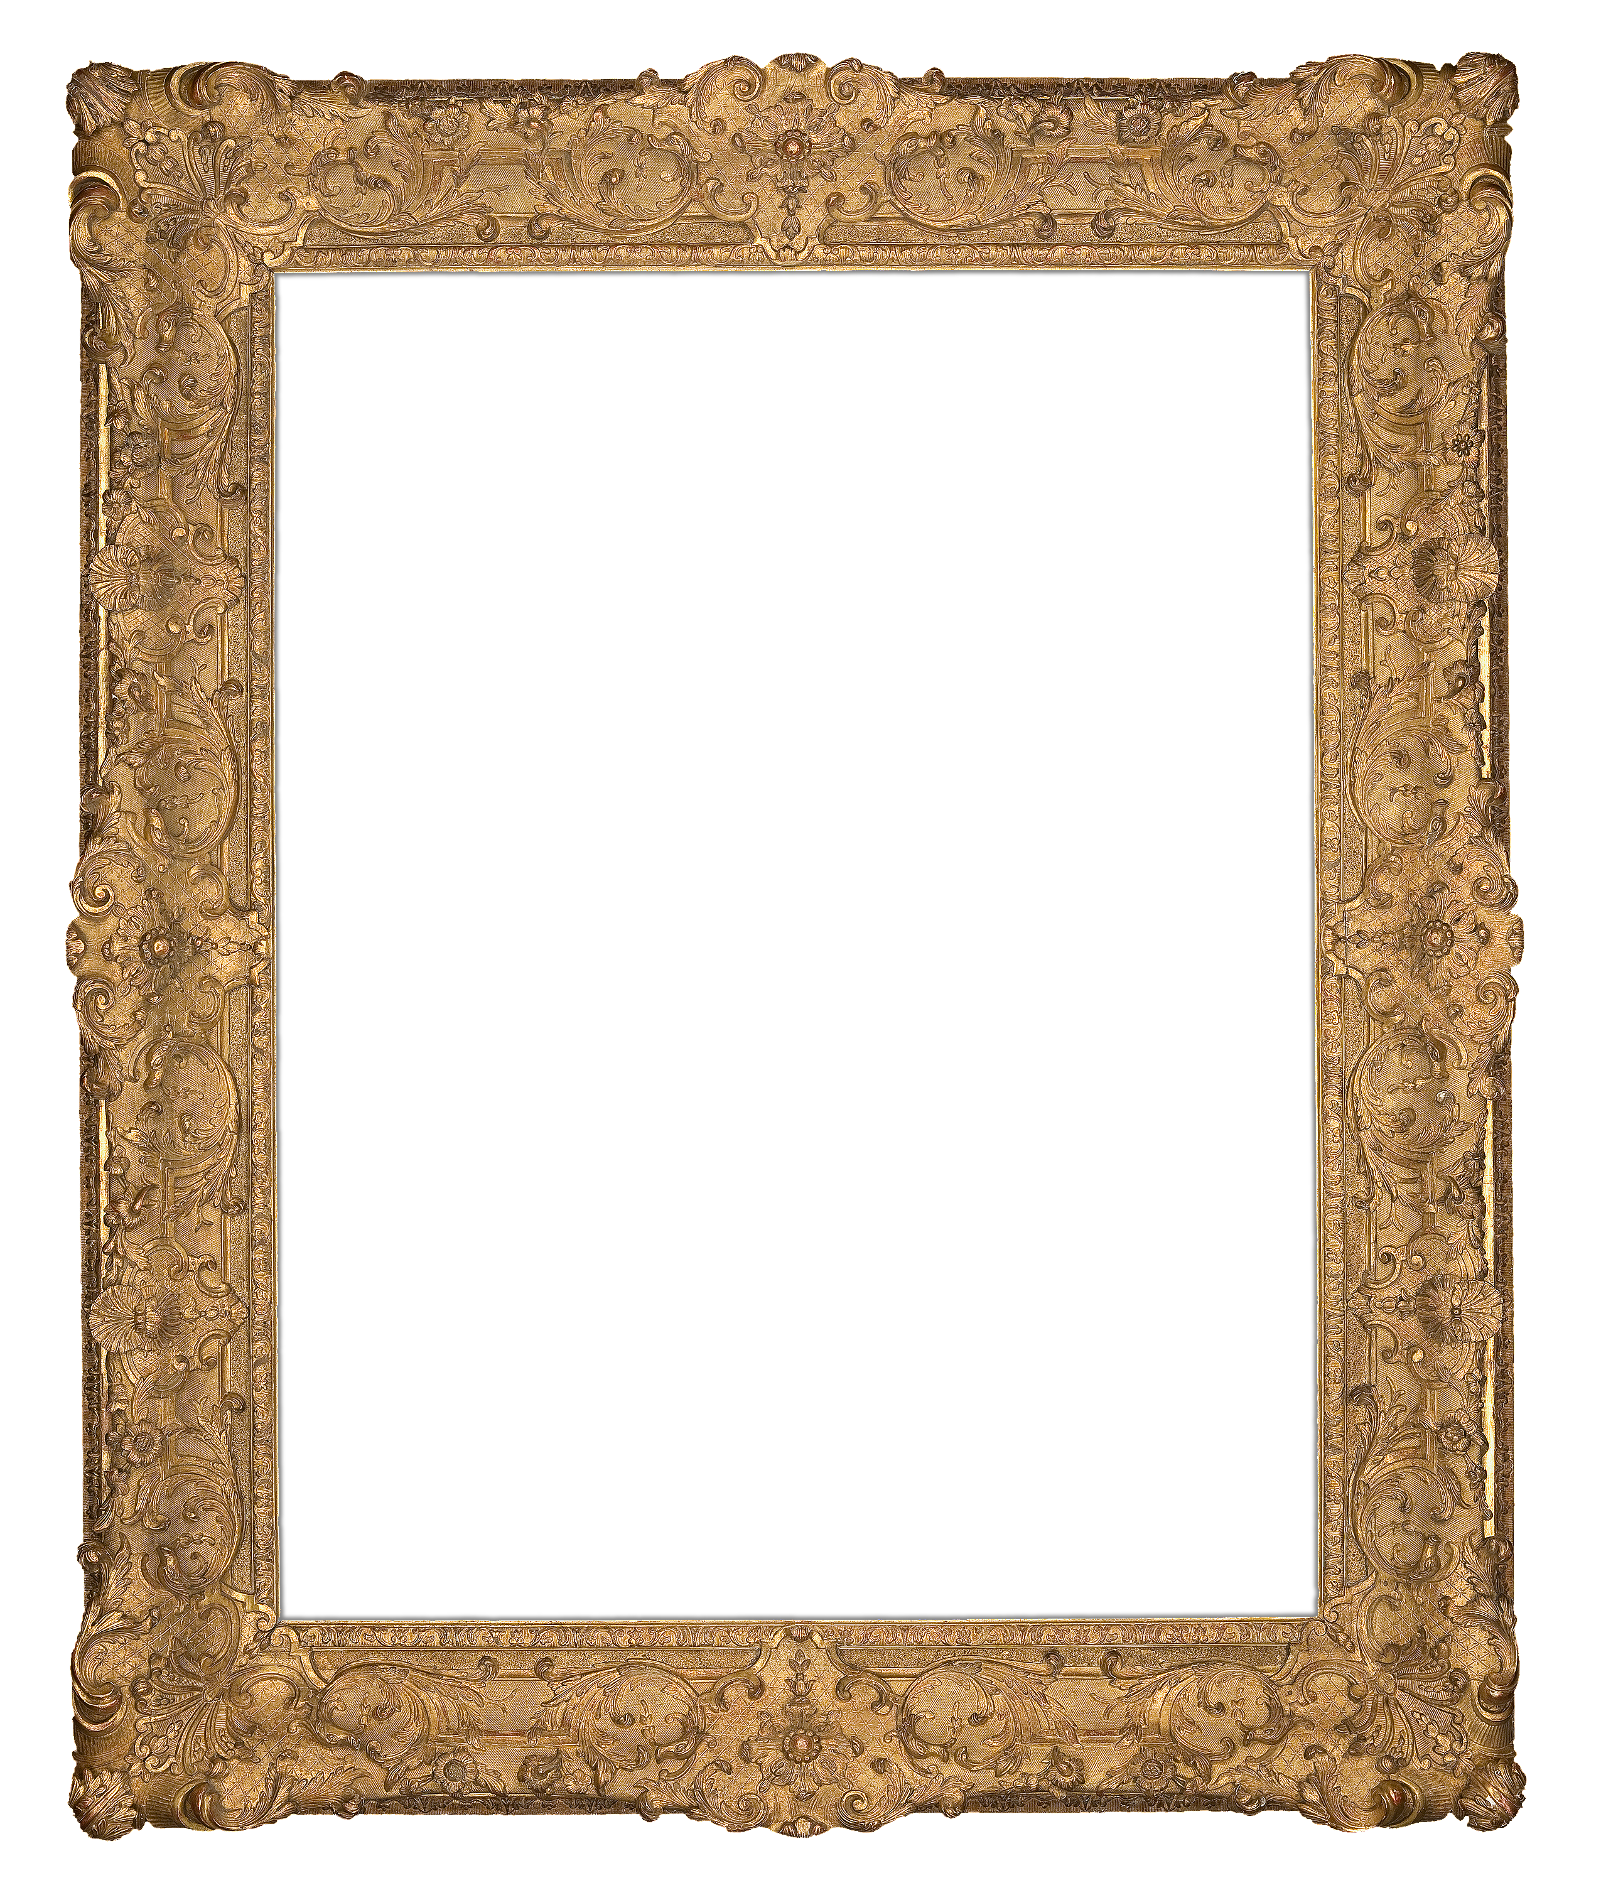 Glasses Frame In French : Featured Frame of the Week!